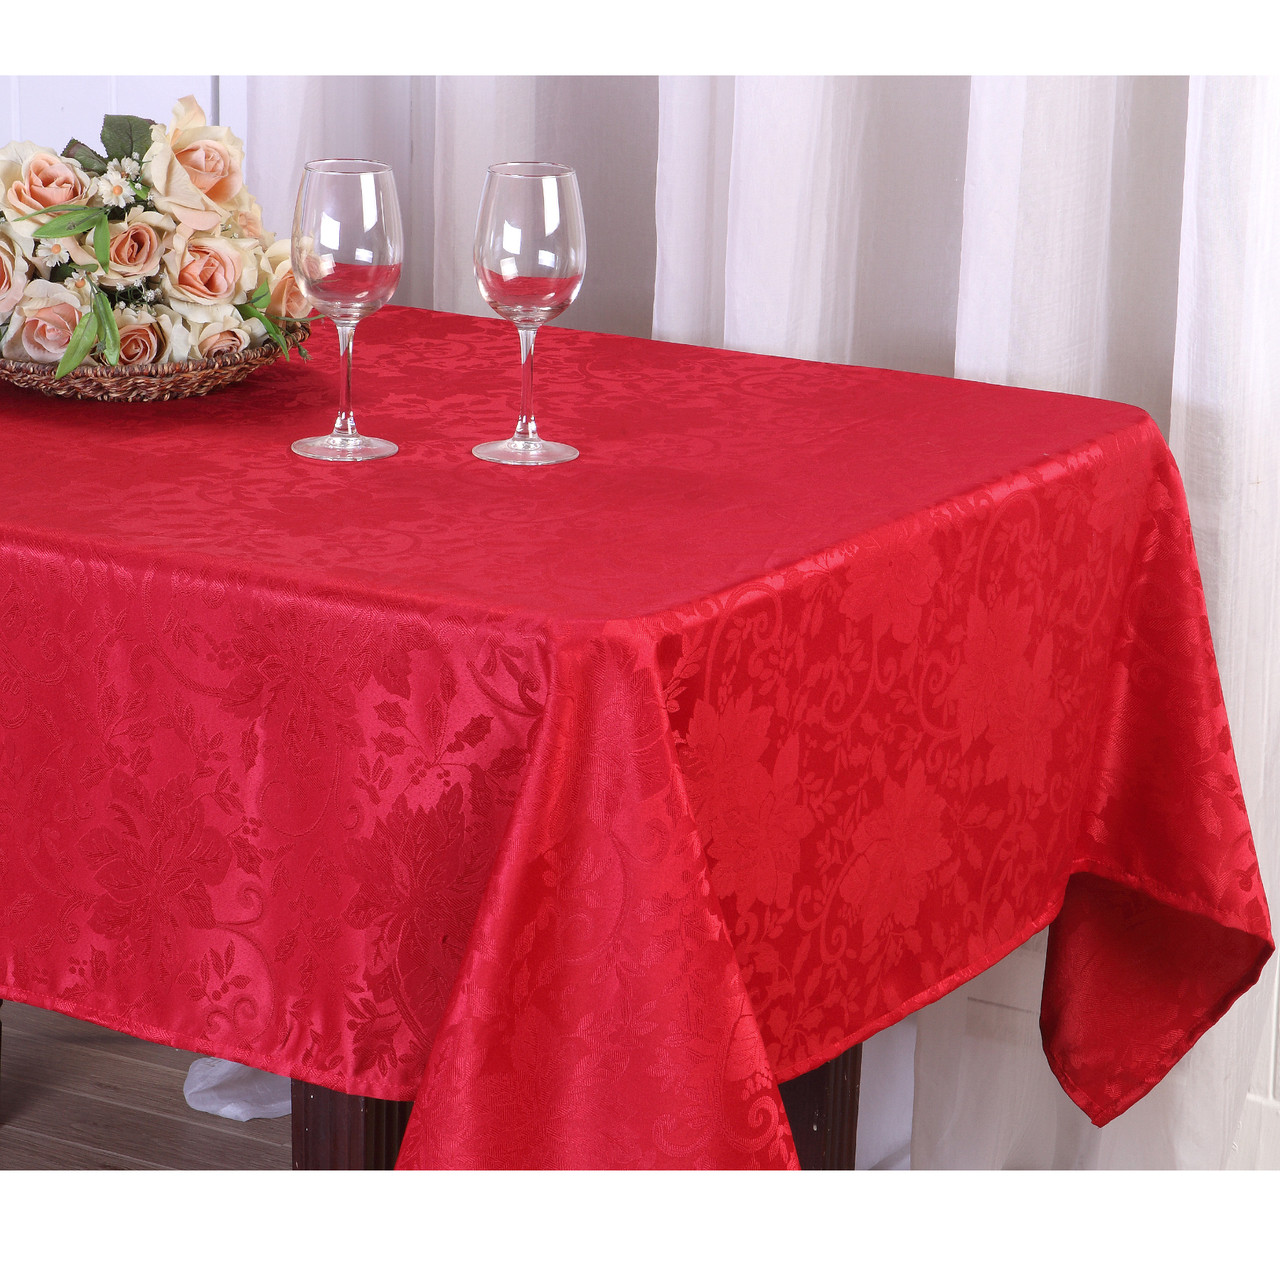 Kashi Home Red Jacquard Fabric Tablecloth, Christmas Holiday Tablecloth